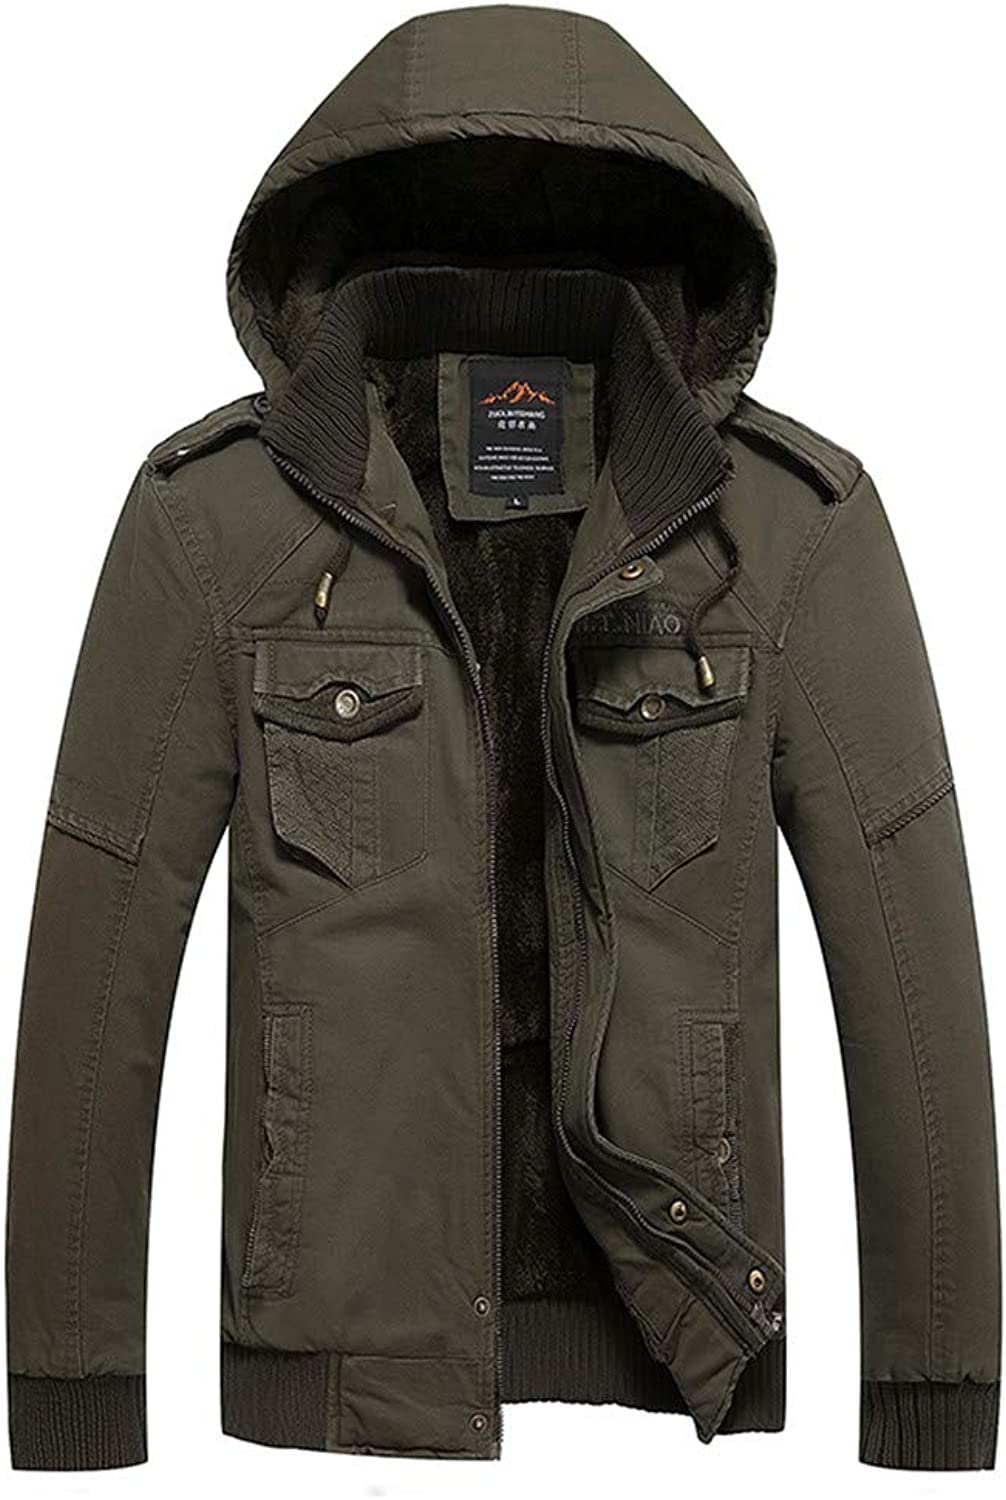 Mens Autumn Winter Jacket Overcoat Outwear Long Trench Zipper Caps Coat (color   Army Green, Size   XXXXL)